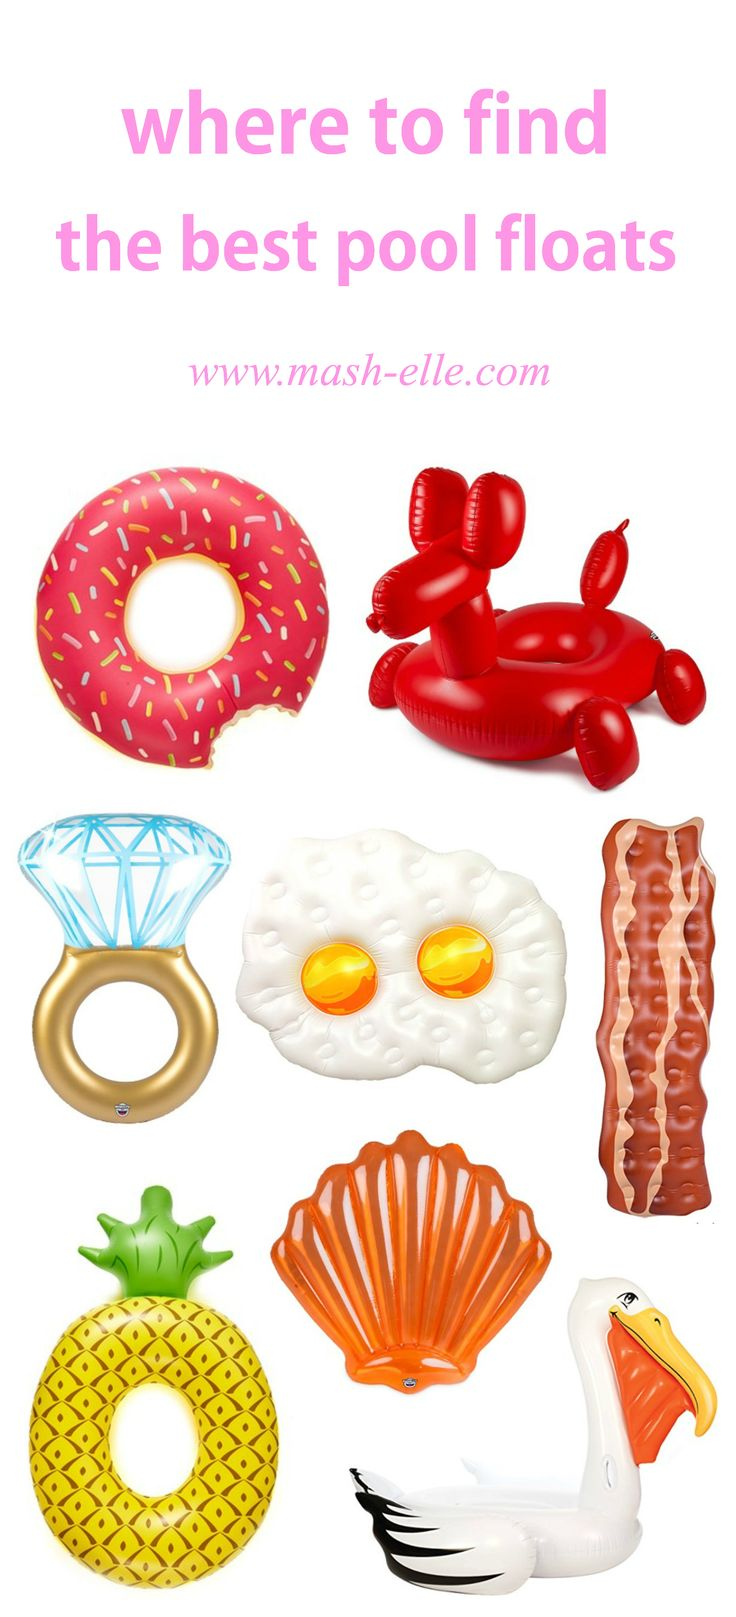 Ummm.. these are seriously amazing! | Fashion, beauty and lifestyle blogger Mash Elle rounds up the best adult pool floats on the Internet! This pool float guide explains where to get the best affordable pool floats for pool parties, beach getaways, vacations etc! Click here to see pool floats of all kinds including: a donut, pelican, pineapple, sea shell, diamond ring, ballon animal, rainbow, american flag, lobster, smarties, tootsie roll, pizza slice, popcorn, cactus, bacon and...